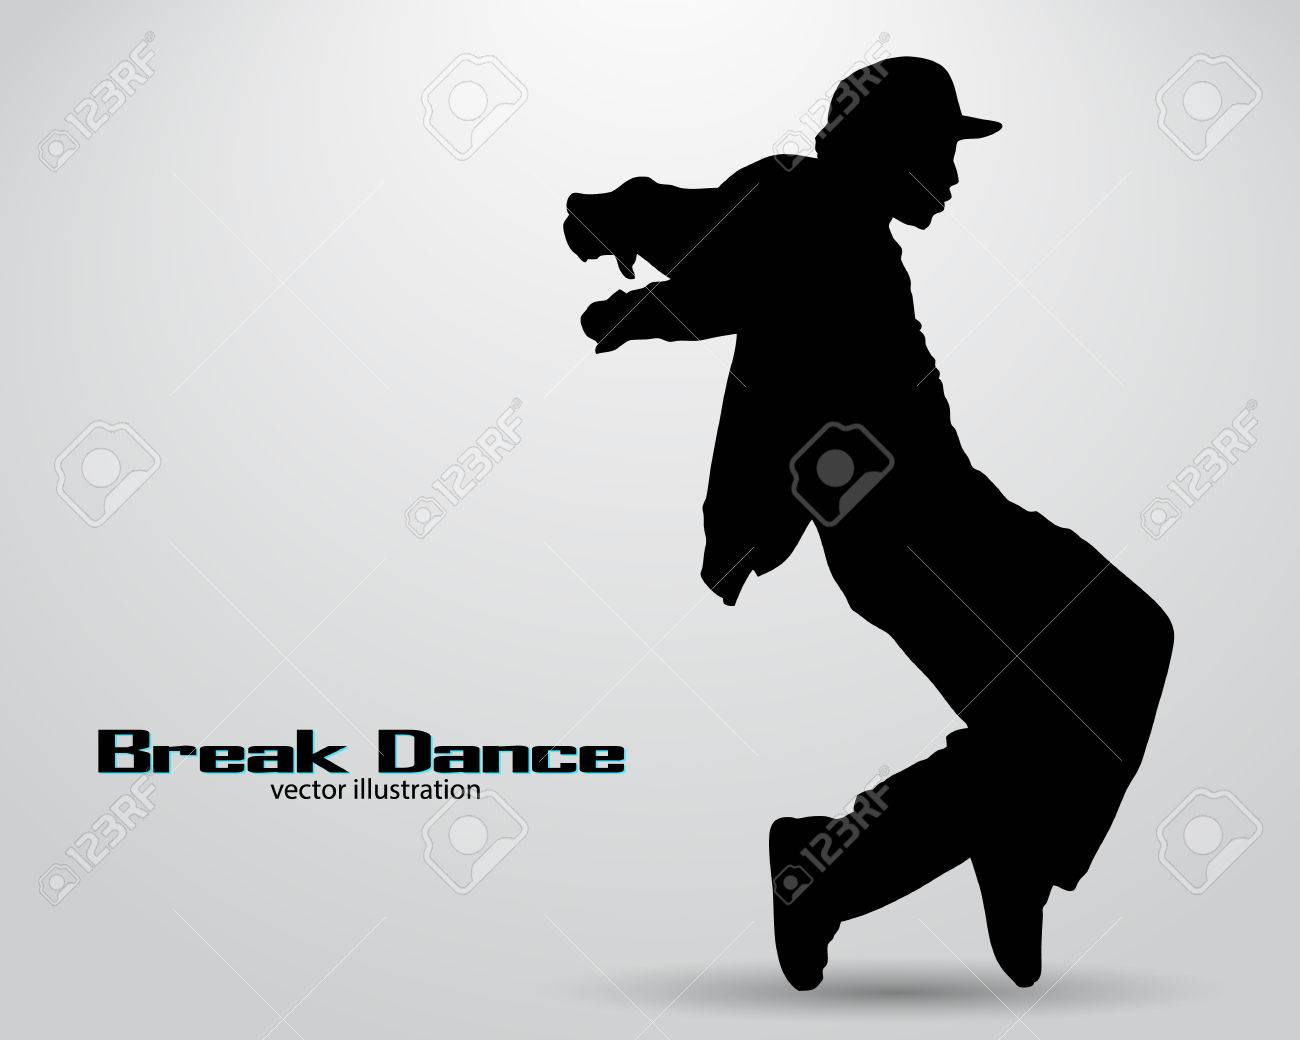 Silhouette of a break dancer. Background and text on a separate layer, color can be changed in one click - 67770802